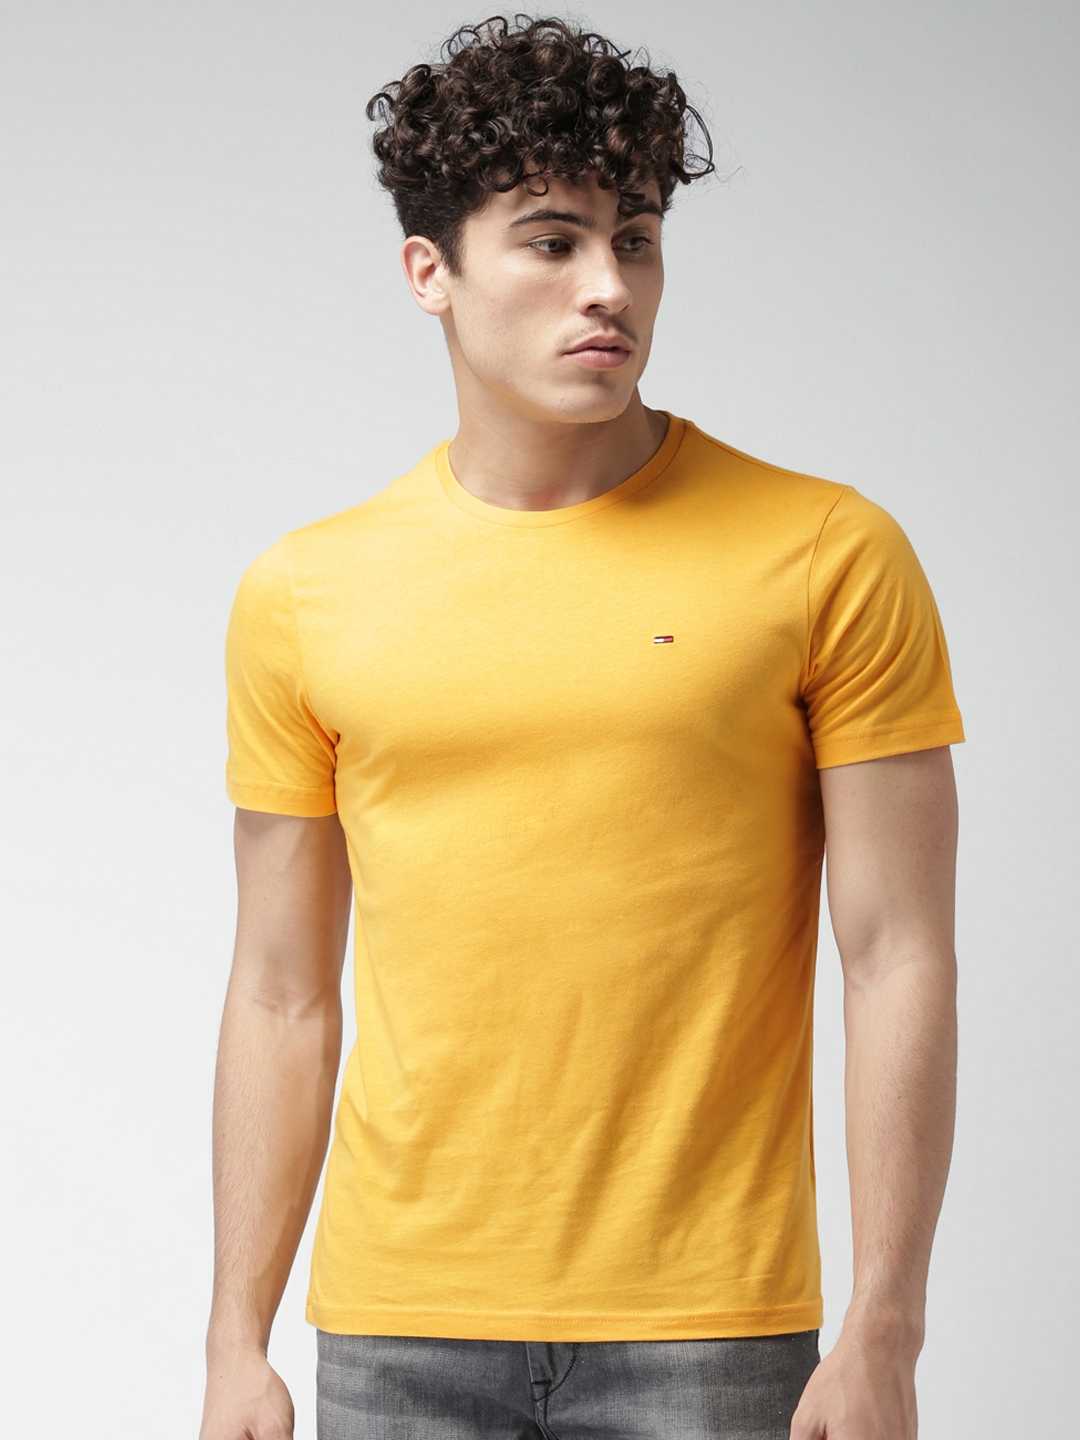 2f4bcd3cc96e2 Buy Tommy Hilfiger Men Yellow Solid Round Neck T Shirt - Tshirts for ...